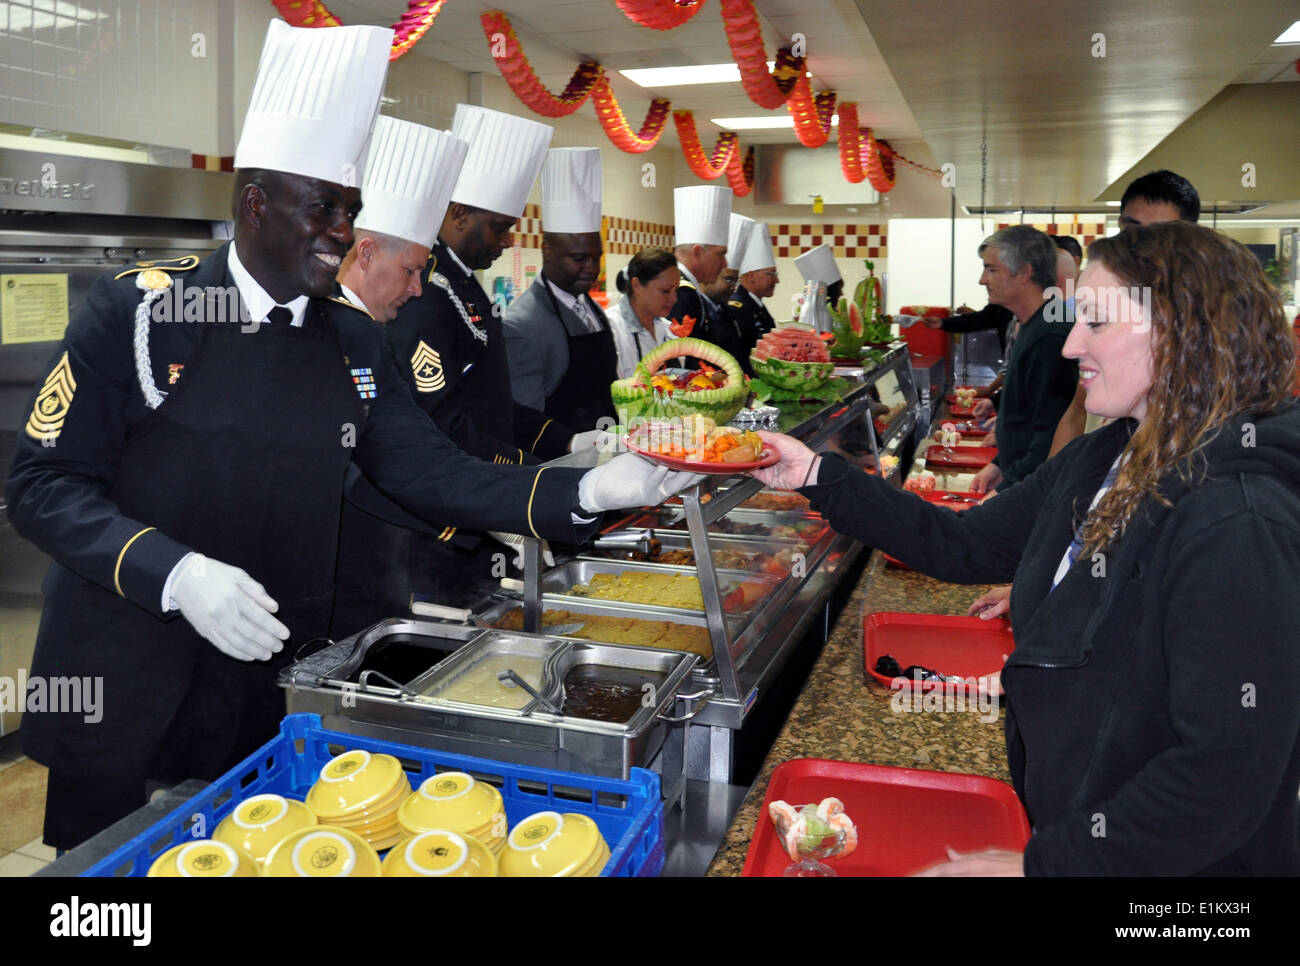 U.S. Army Command Sgt. Maj. Norriel Fahie, assigned to the Army Support Activity, serves Thanksgiving dinner to Stock Photo